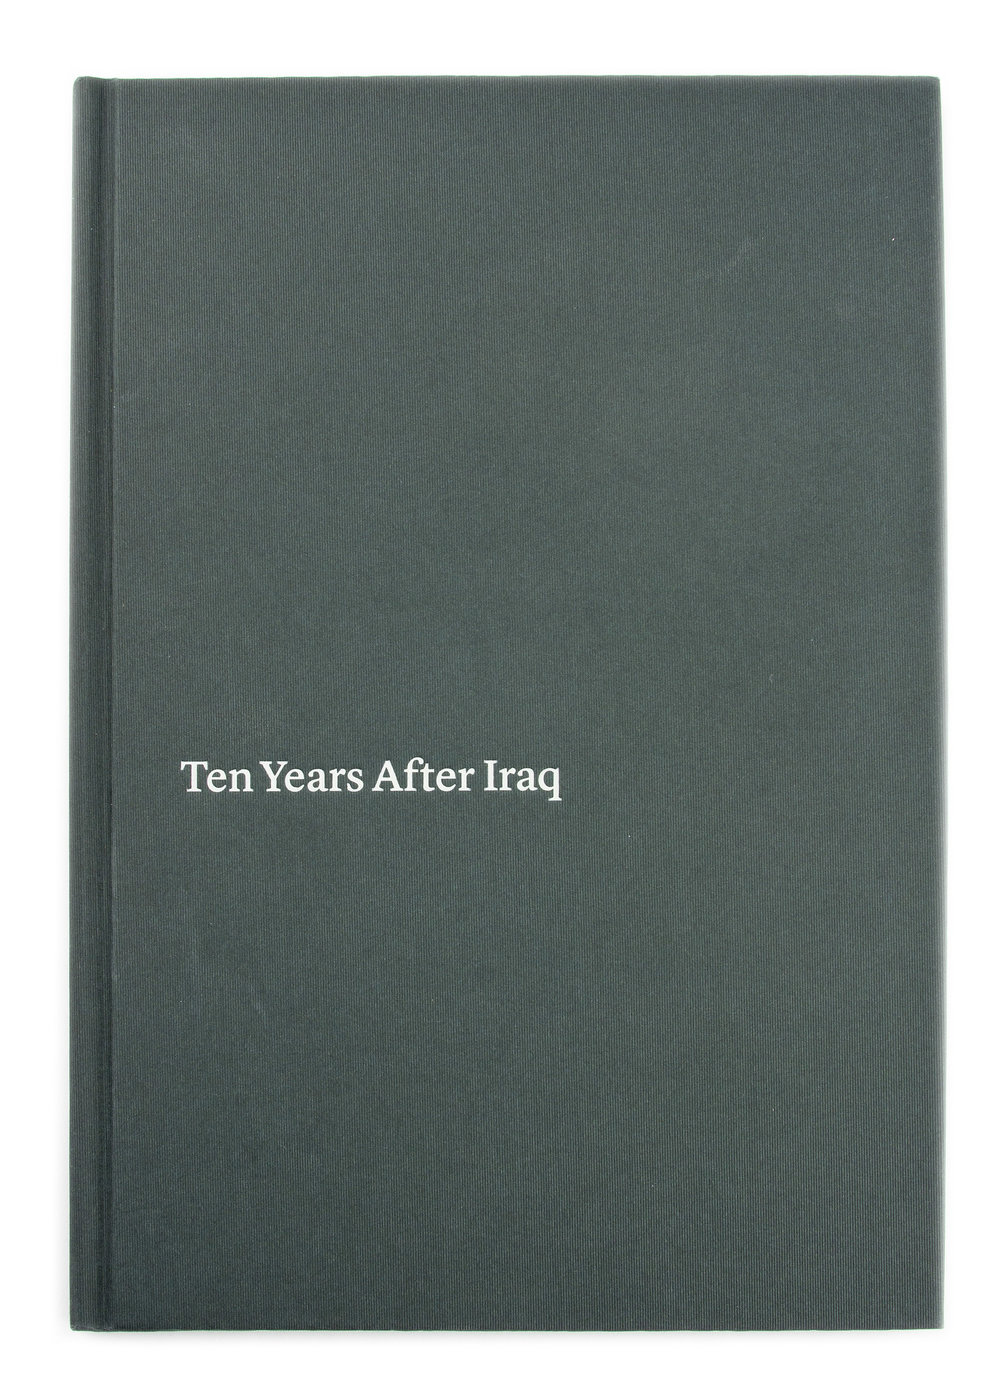 Ten Years After Iraq